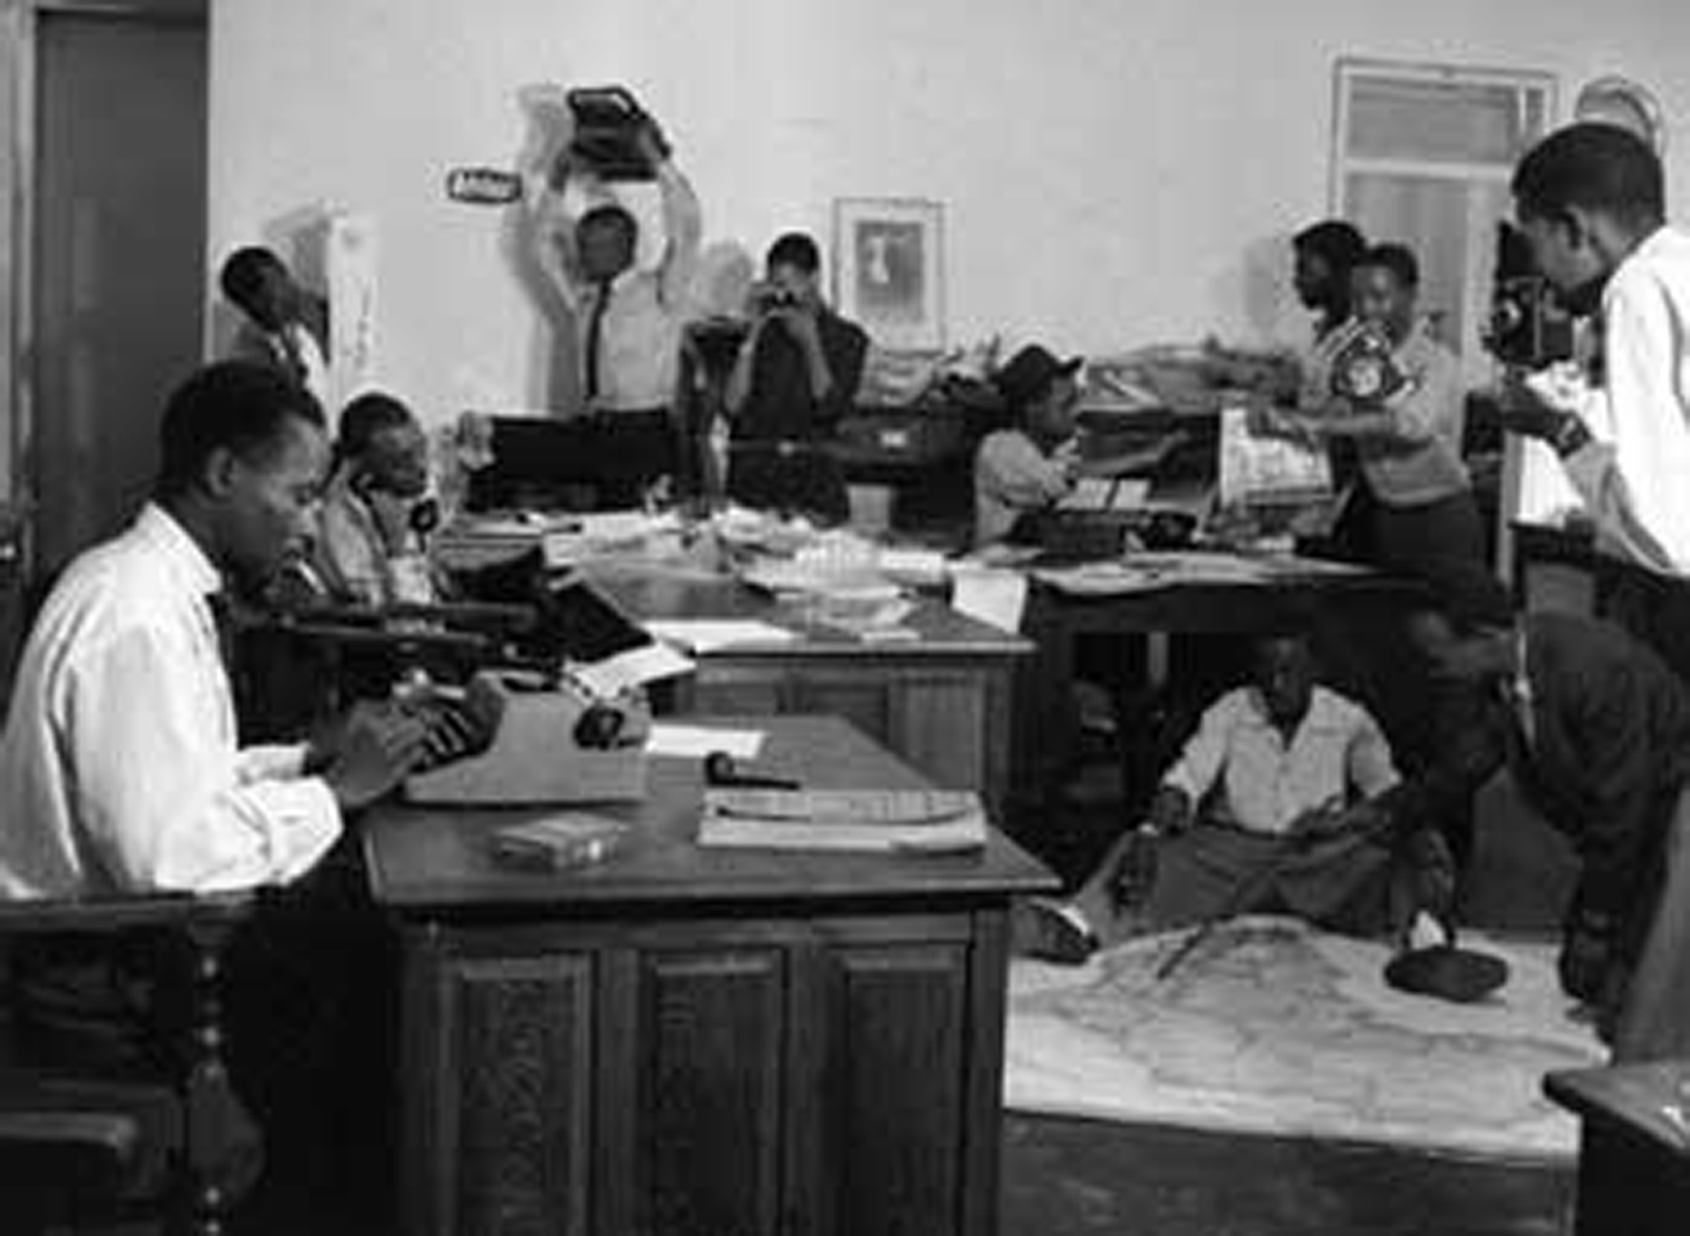 sophiatown in the 1950s What kept non white south africans going going was jazz, poetry and the arts, this was particularly true to those that lived in sophiatown, lady selborne now atteridgeville, and district 6 in cape townduring this era the struggle for freedom was alive and kicking in every aspect of black daily life however they refused to be crushed by laws which prevented them from owning property, taking a walk in the park or around town at night.